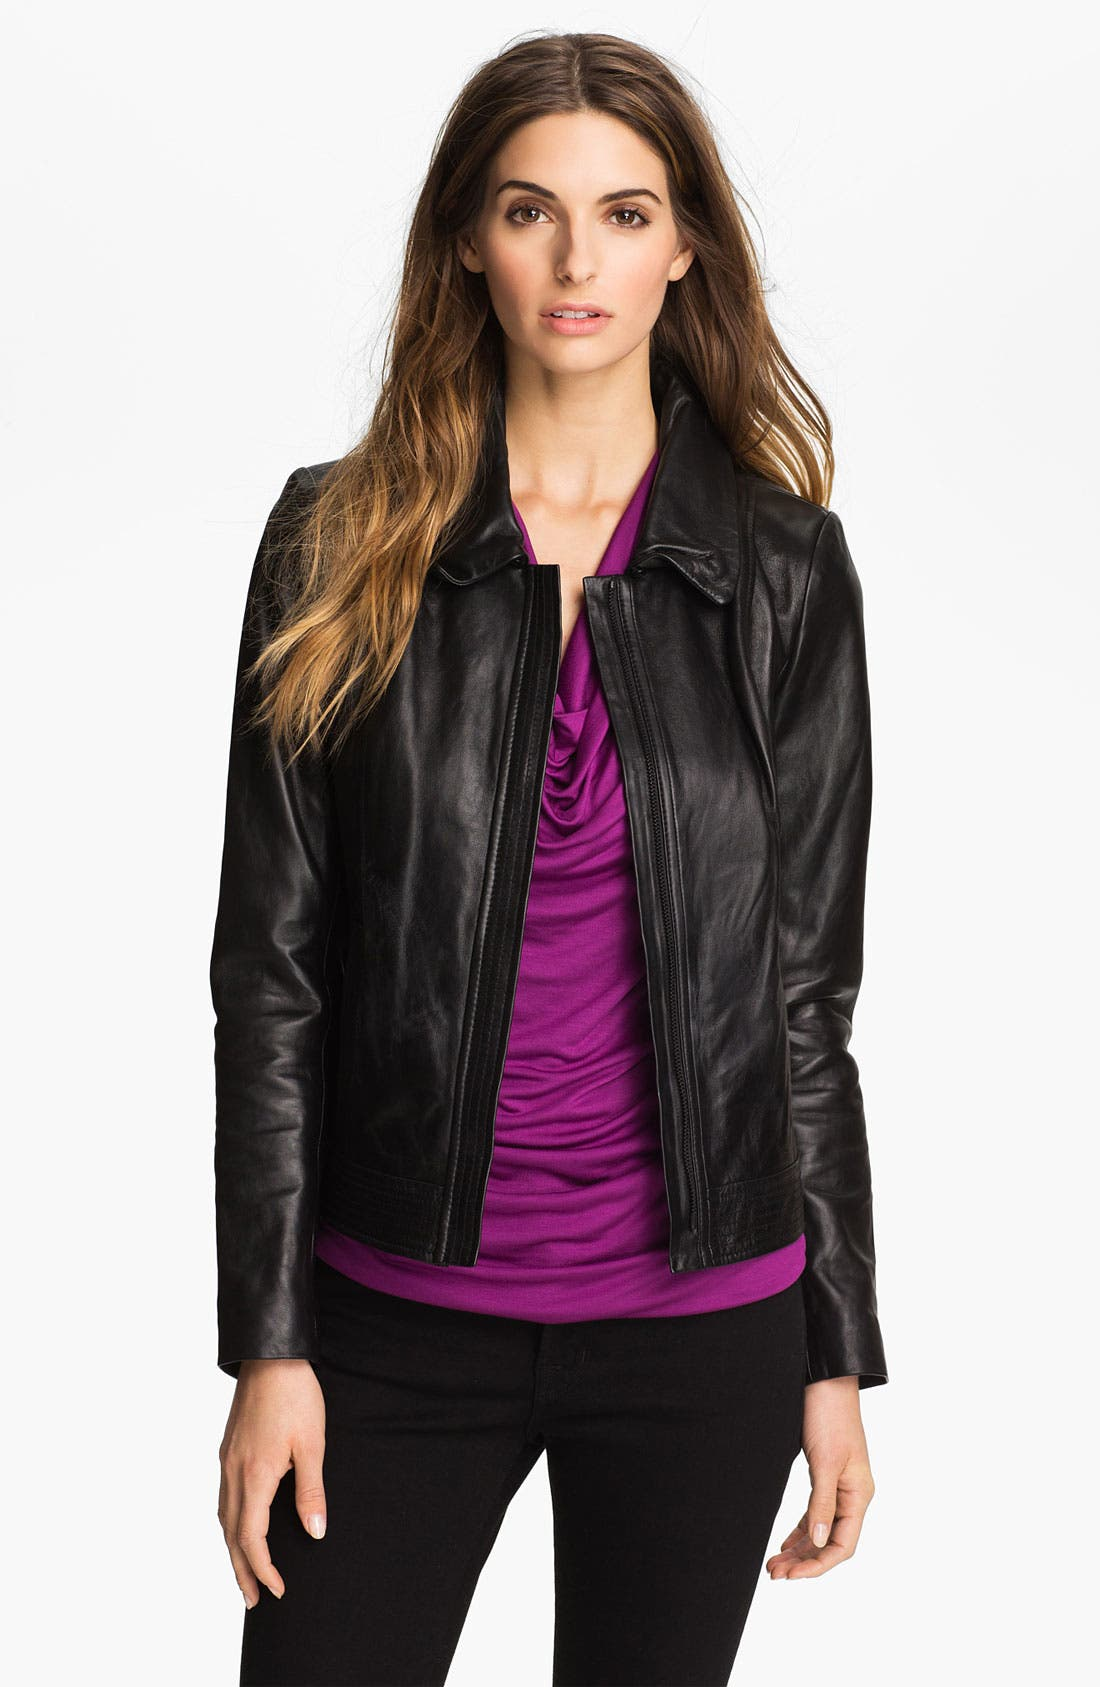 Main Image - Classiques Entier® 'Brenna' Leather Jacket with Faux Fur